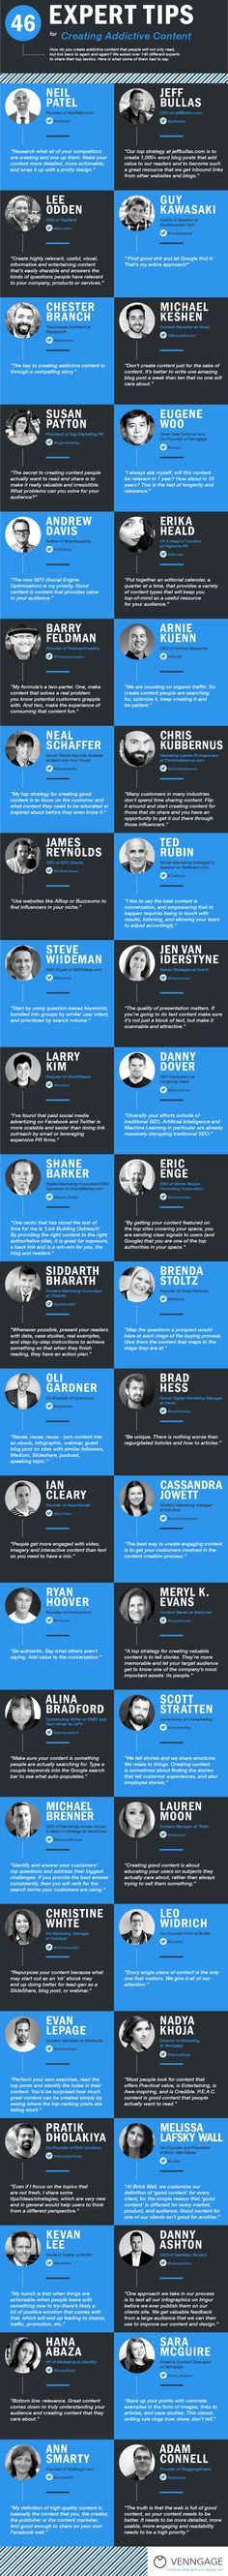 10 Tips for Creating Addictive Content - #infographic